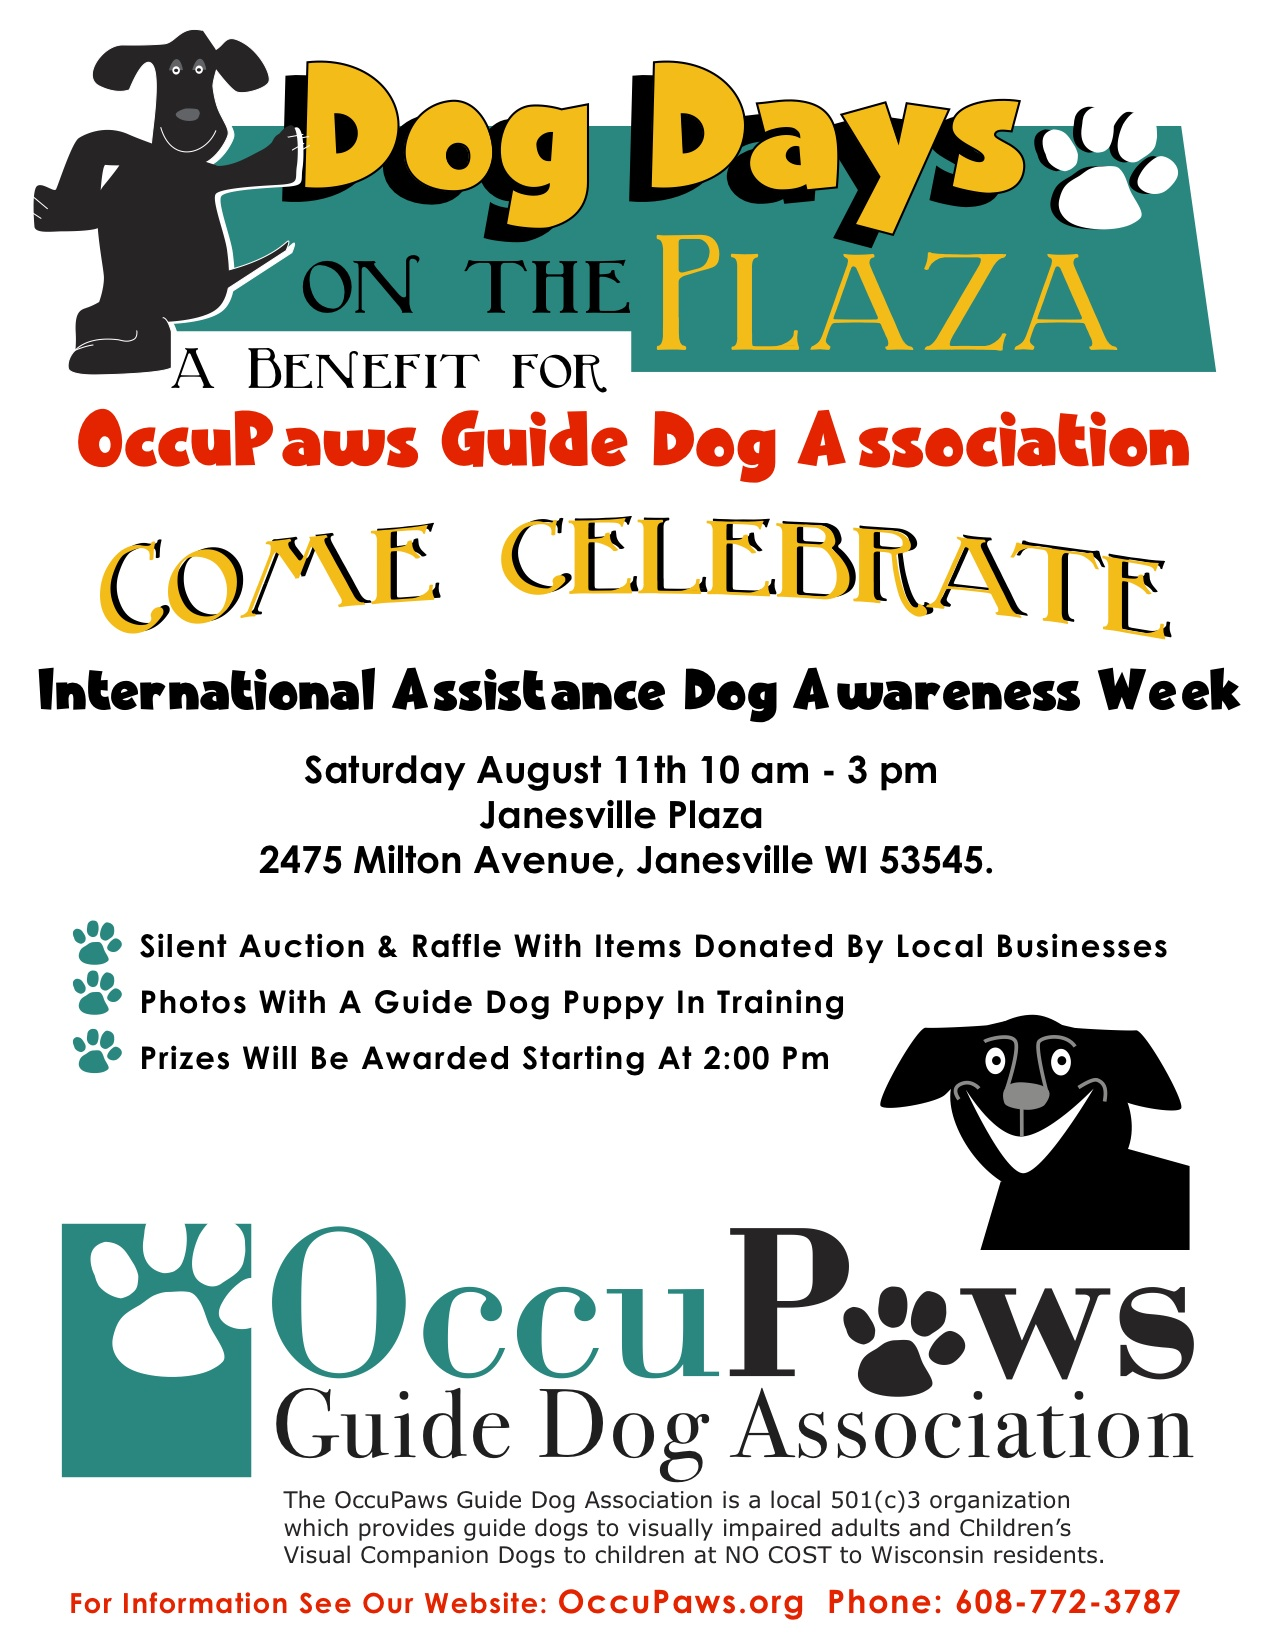 Dog Days on the Plaza